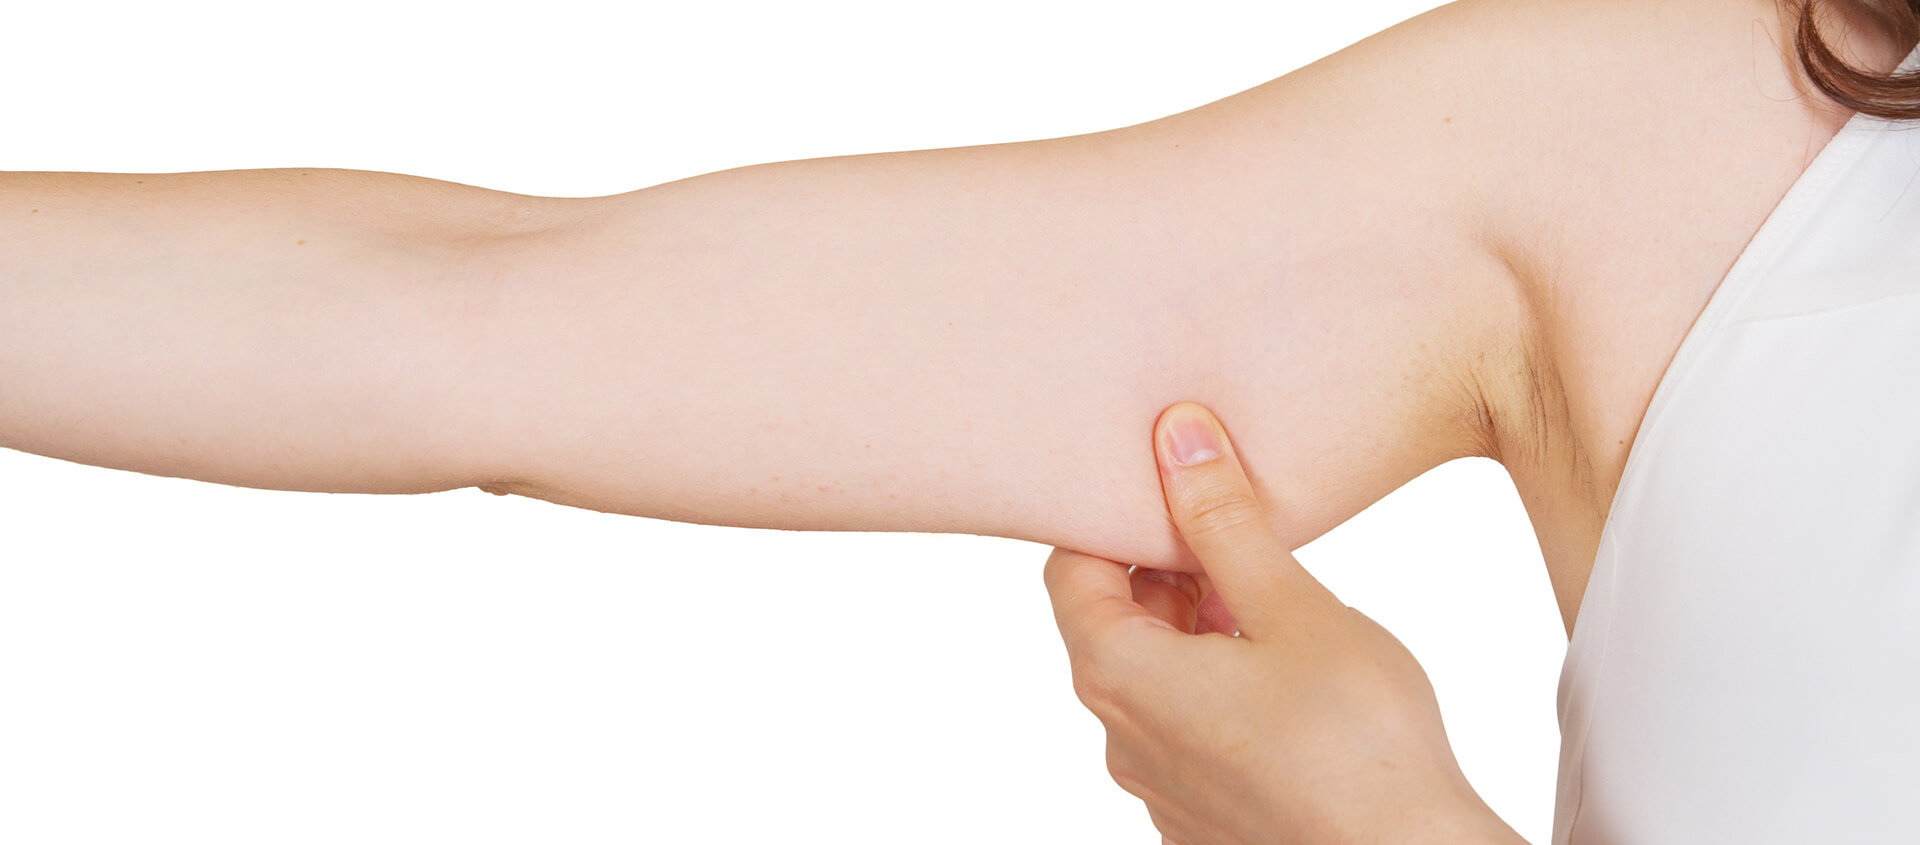 Mark H. Tseng, M.D. Blog | The skinny on fat reduction for arms with liposuction and alternatives in Kirkland, WA